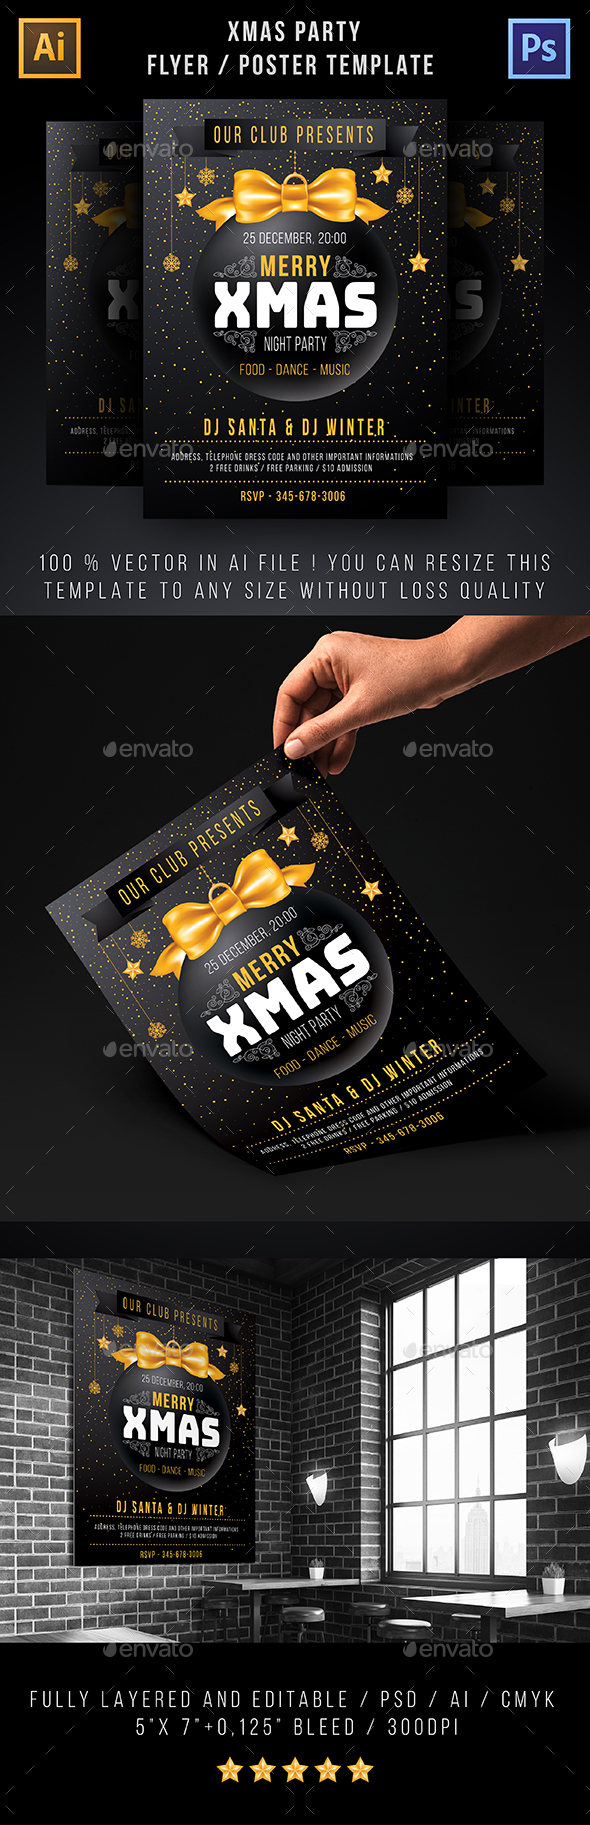 Template For Xmas Party Flyer, Poster Or Invitation - Clubs & Parties Events